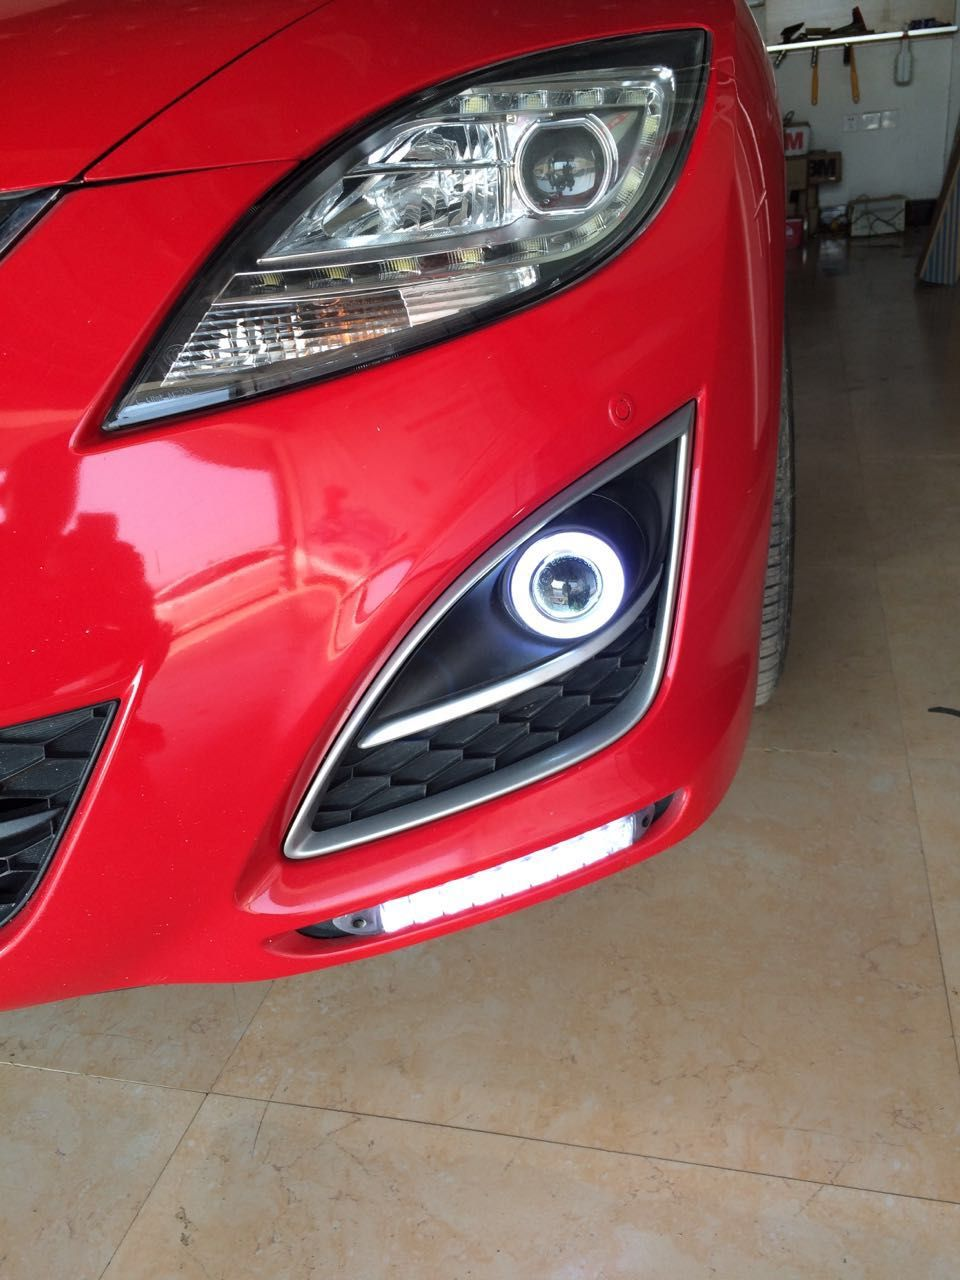 eOsuns COB angel eye led daytime running light DRL + Fog Light + Projector Lens for Mazda 6 Atenza 2010-2013 (GH) 2 generation